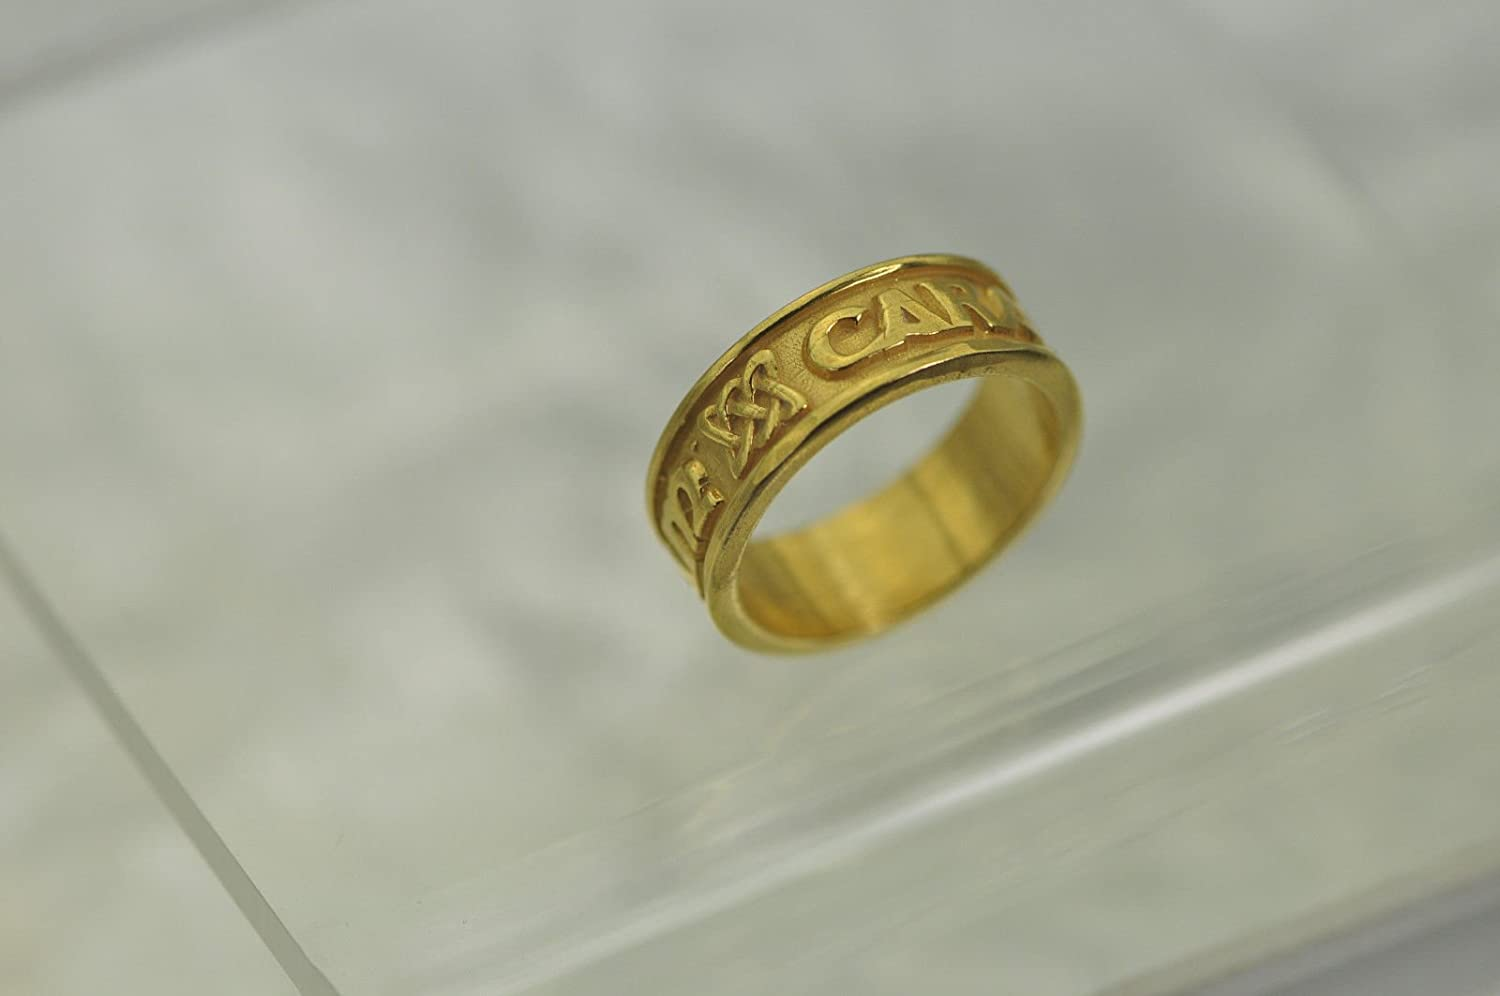 24K Yellow Gold Plated CELTIC INFINITY KNOT Ring Band Weave Jewelry Pick Size